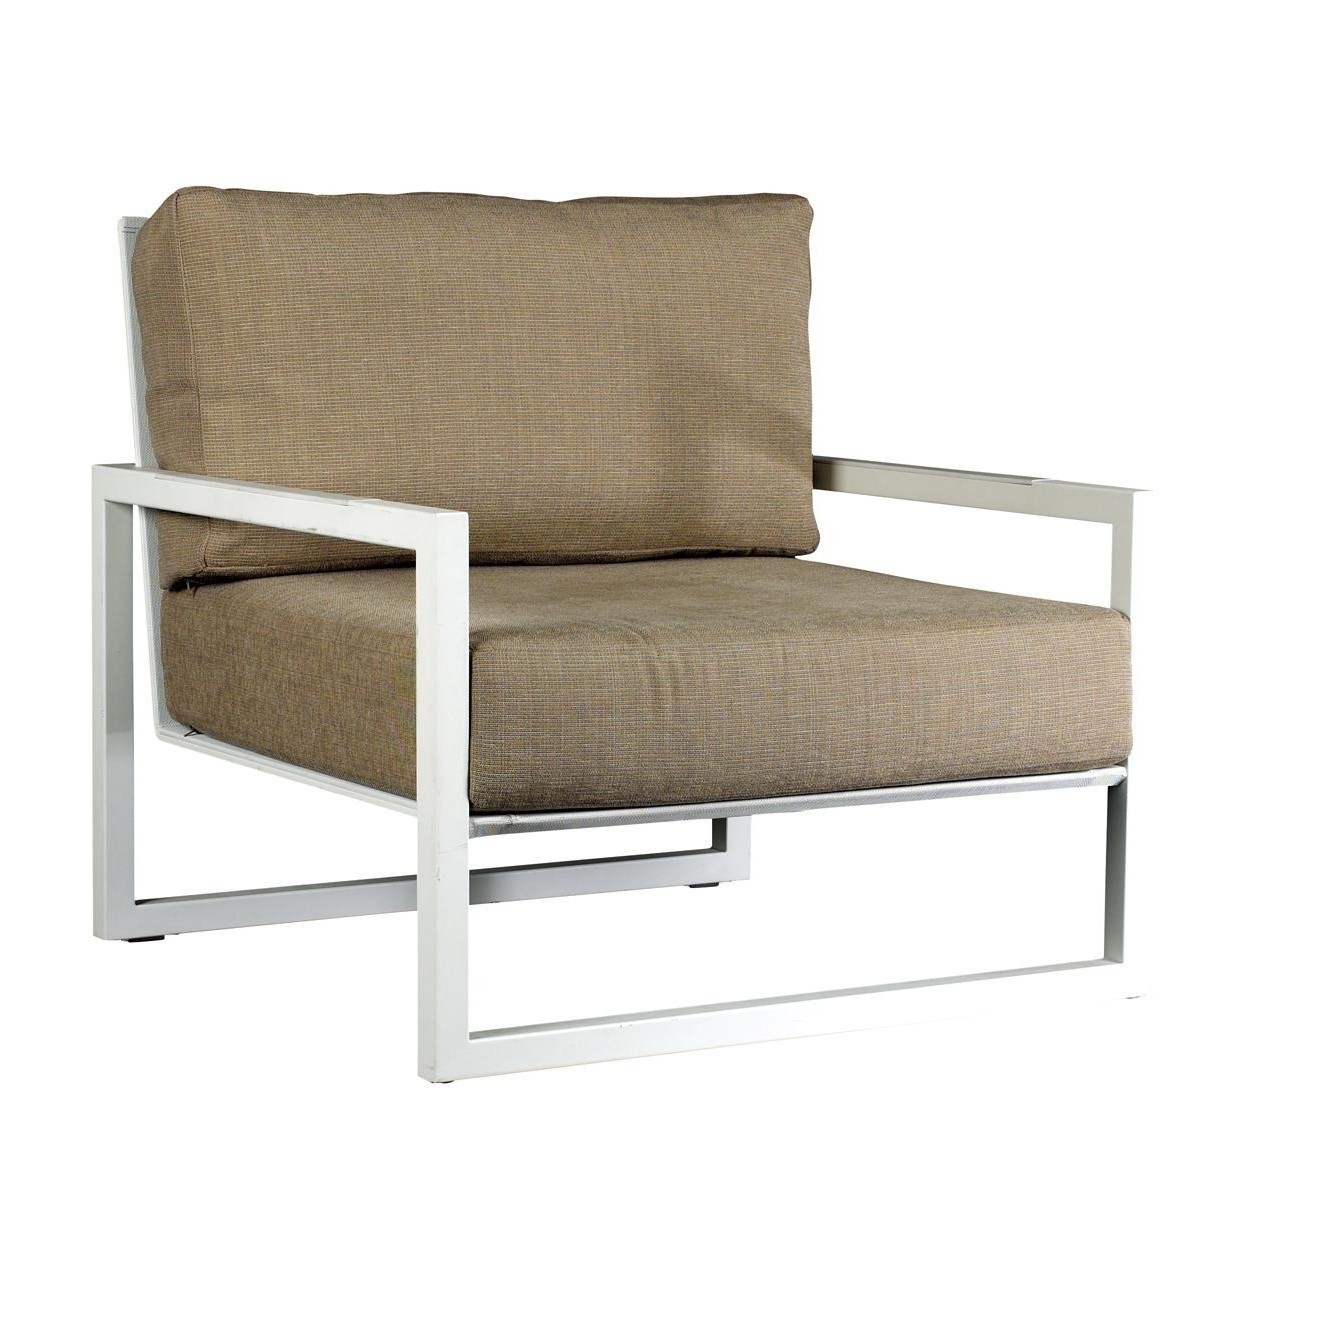 Lounge Outdoor Sessel Ninix 100 Lounge Chair